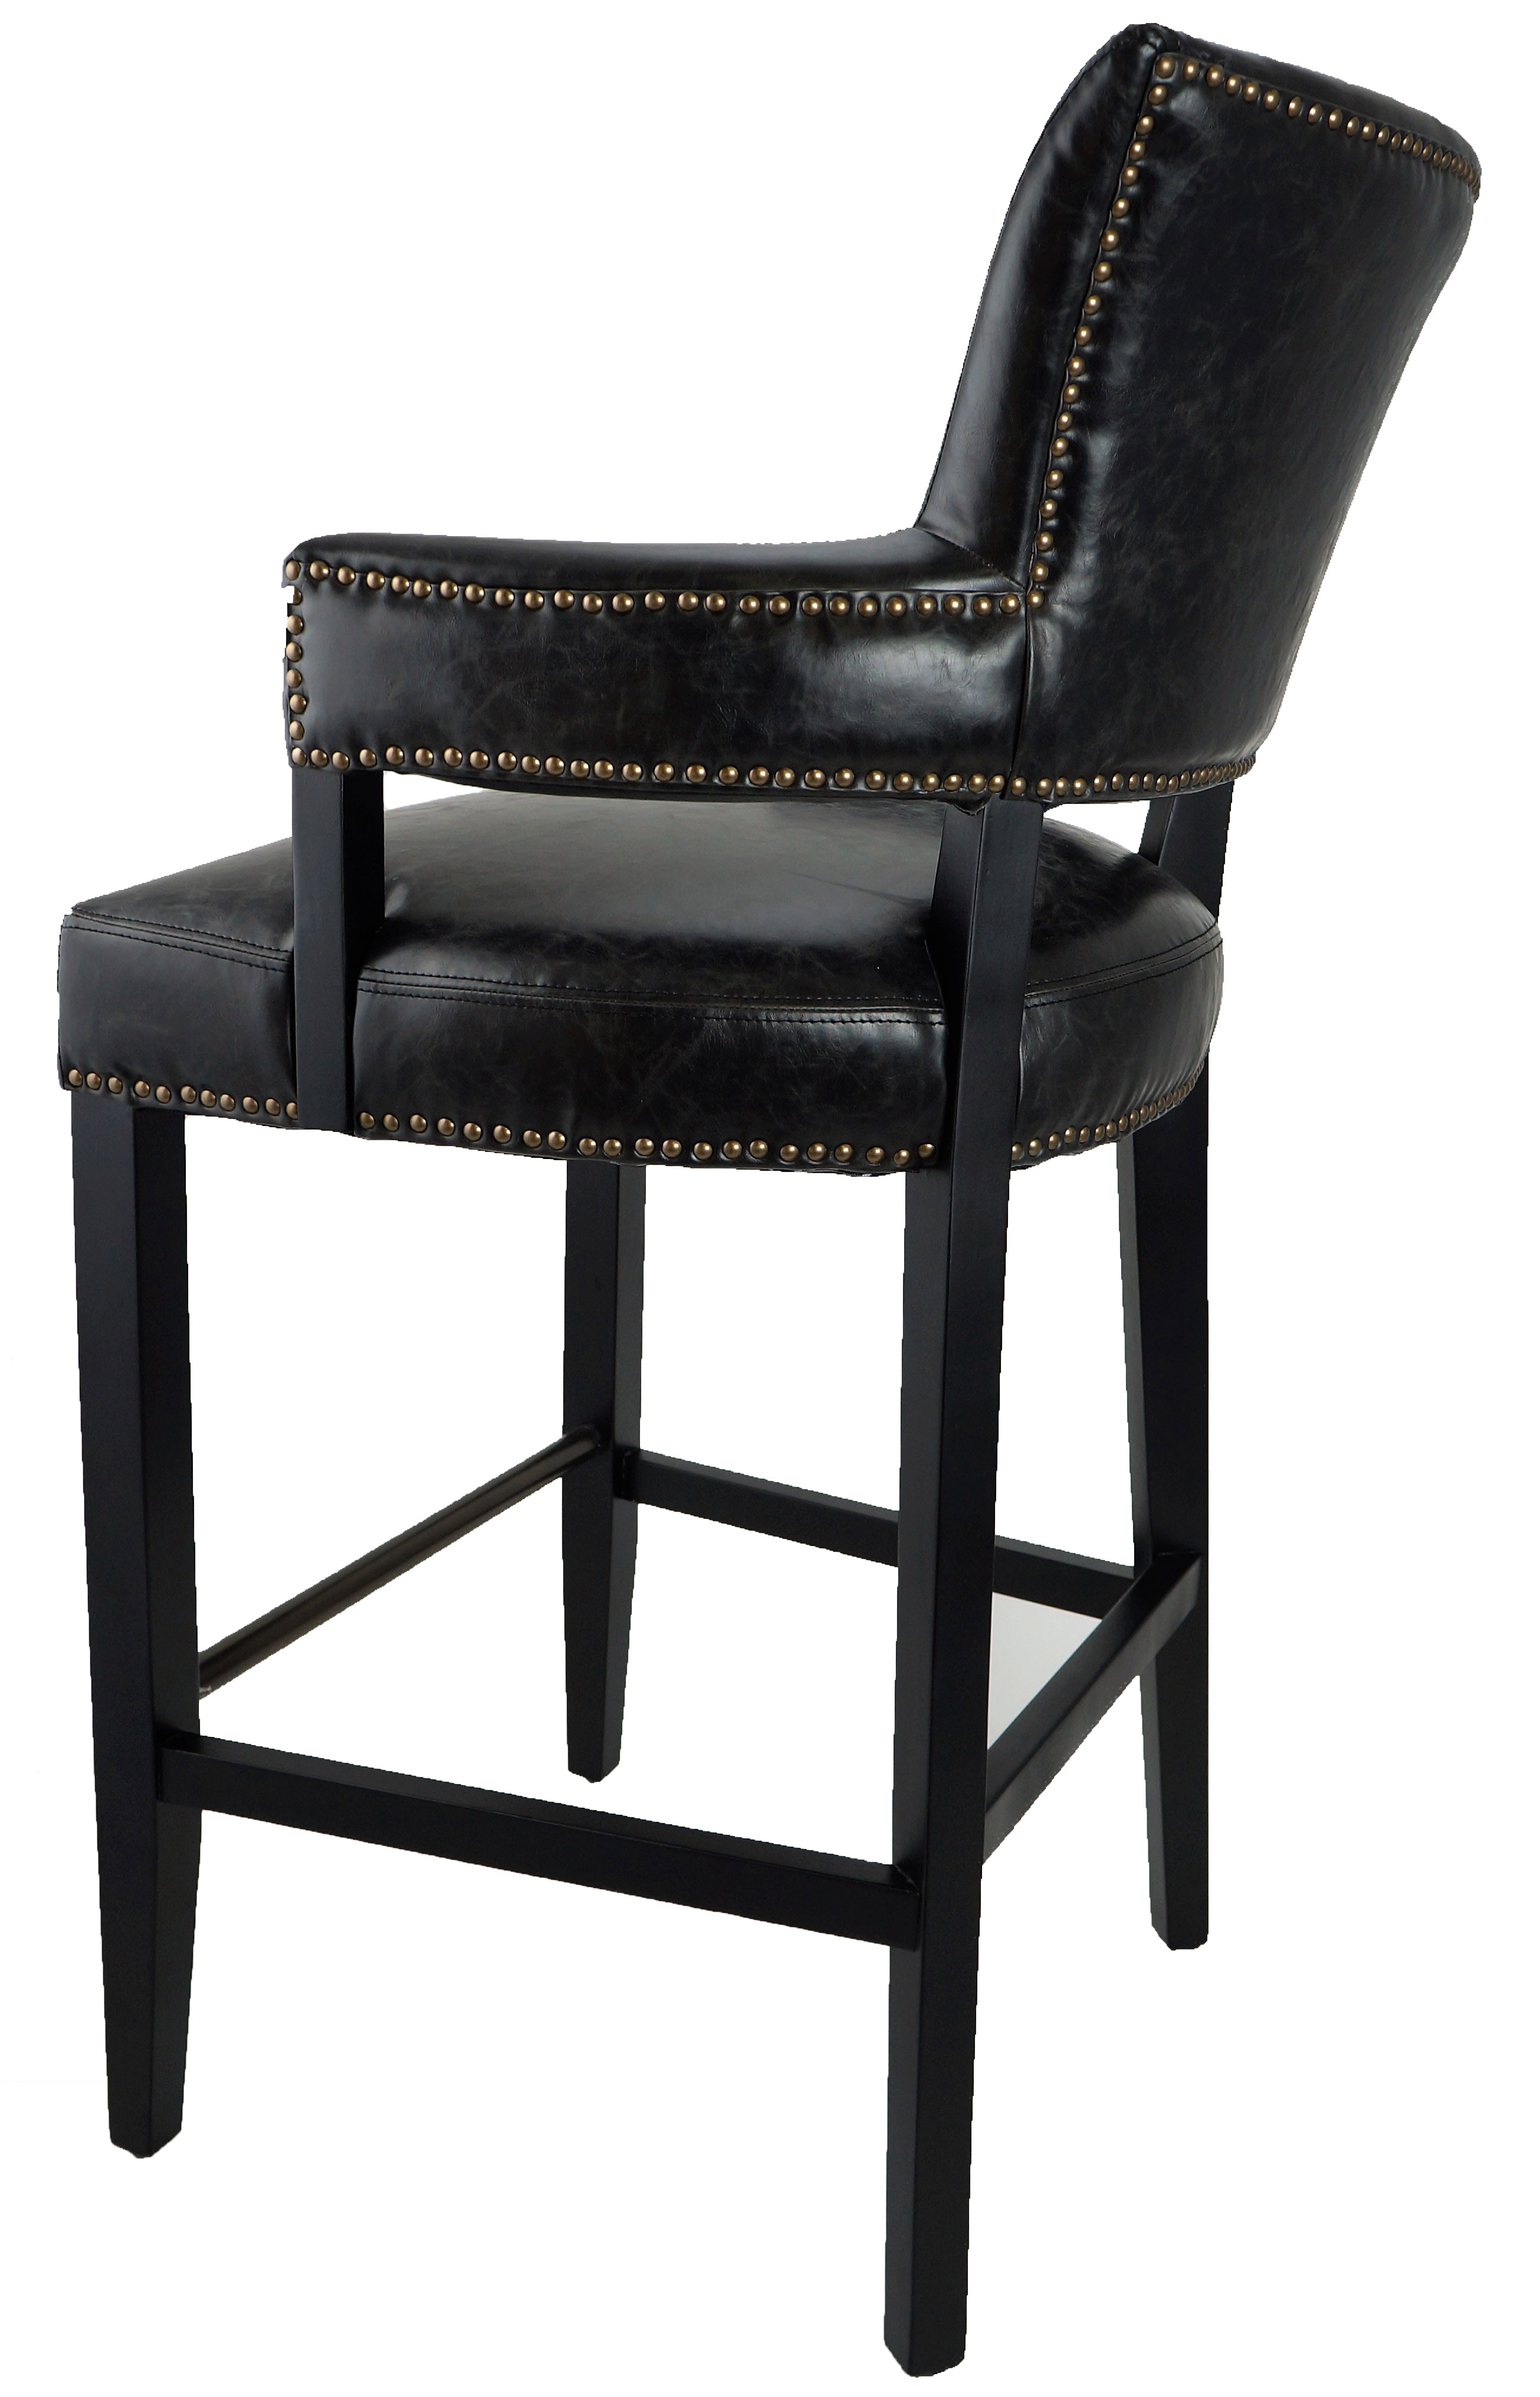 Cheap Black Barstools Bar Stools And Kitchen Counter Stools On Sale Rv 4334